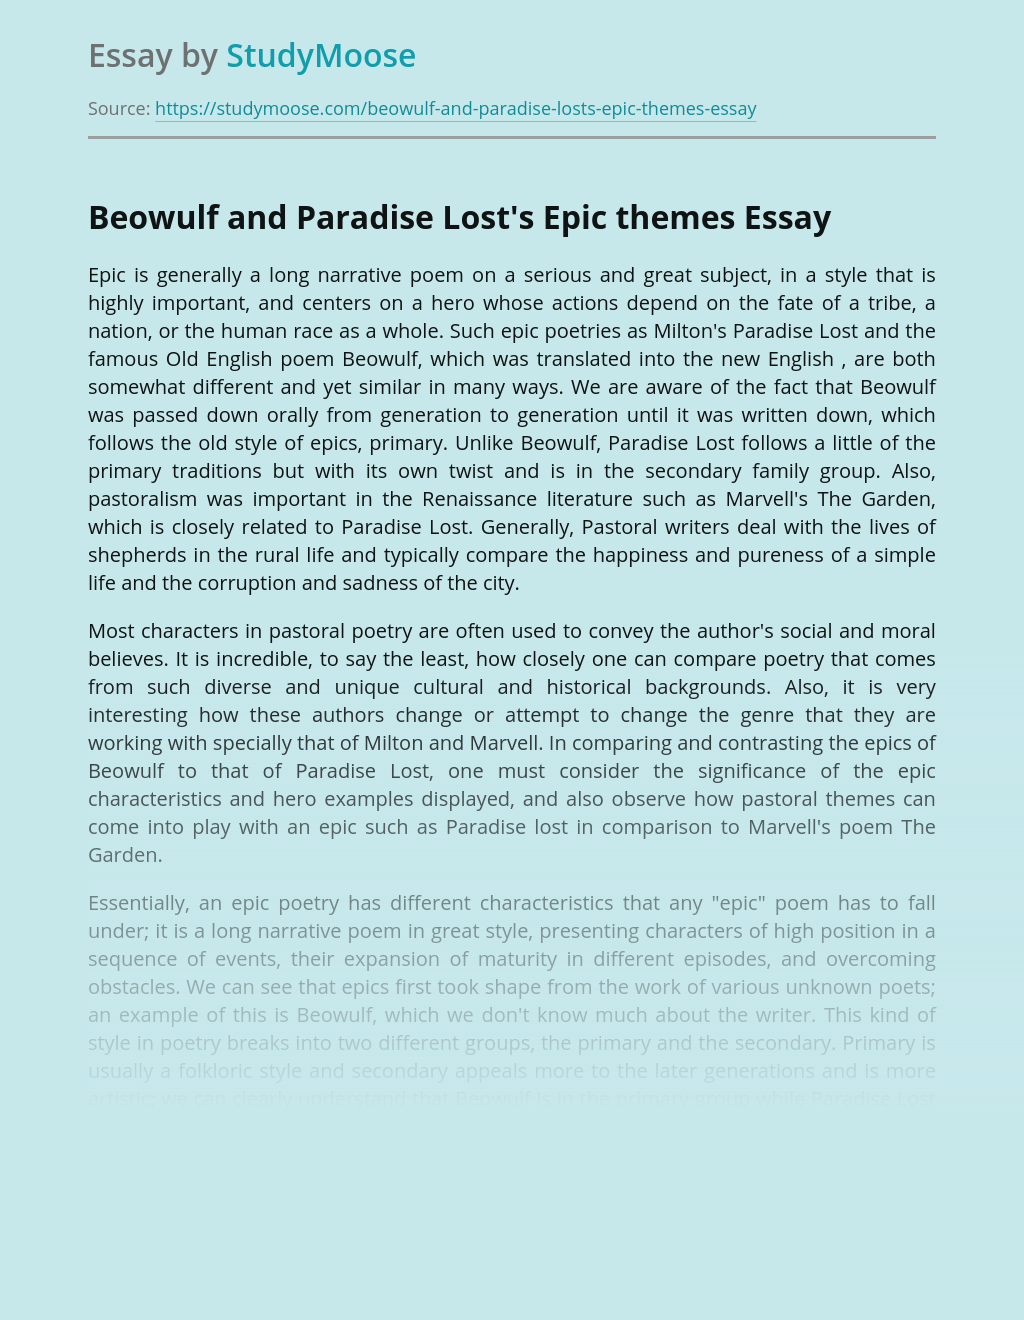 Beowulf and Paradise Lost's Epic themes